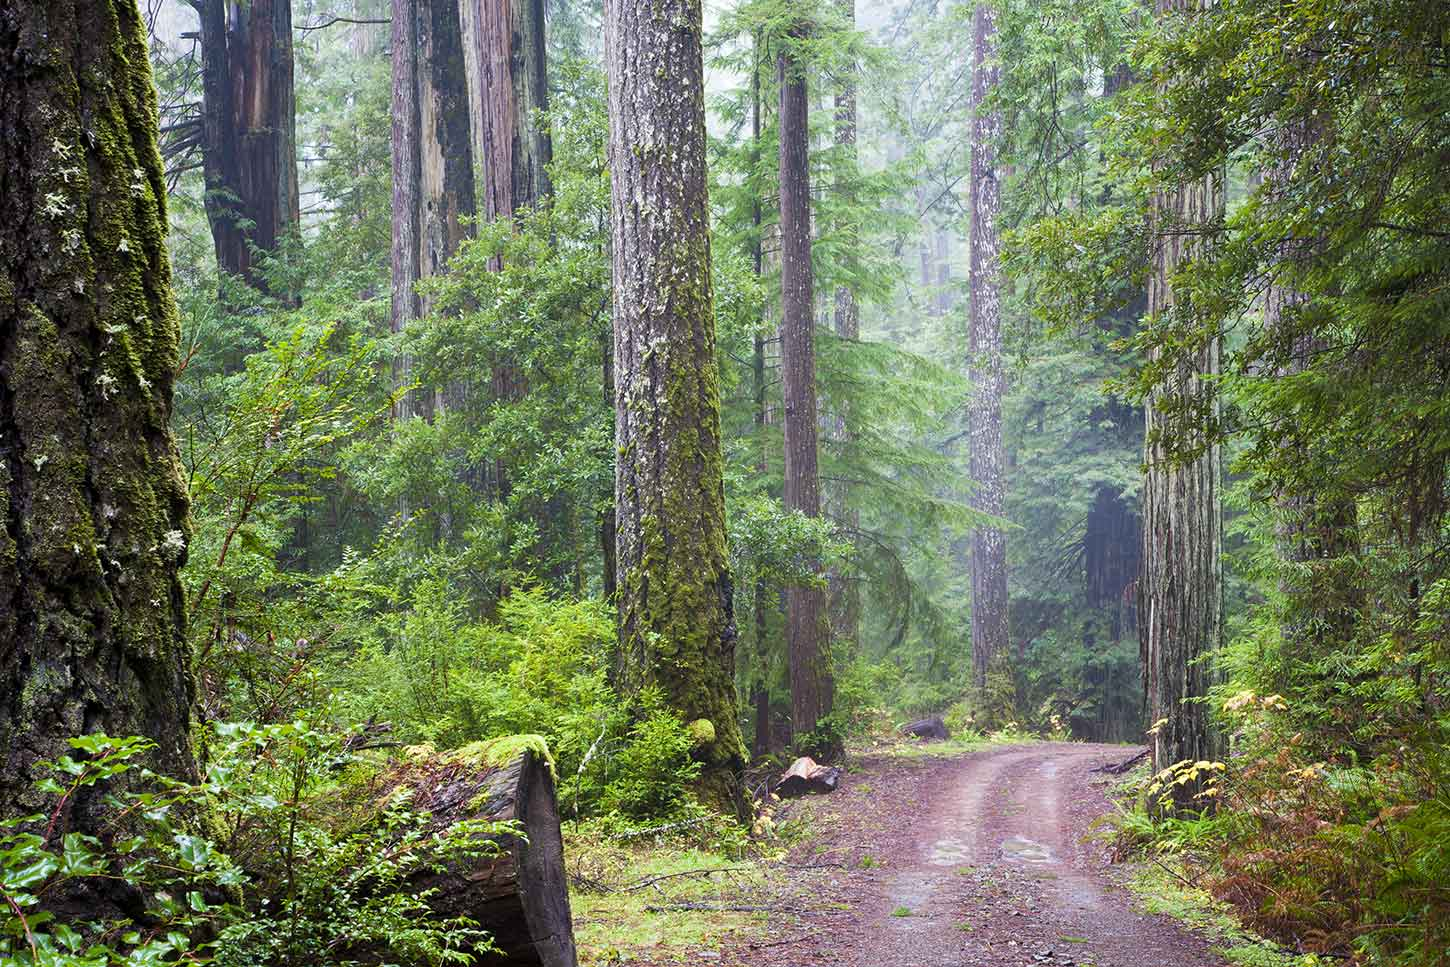 The Lost Man trail in the Redwoods National park in Northern California.